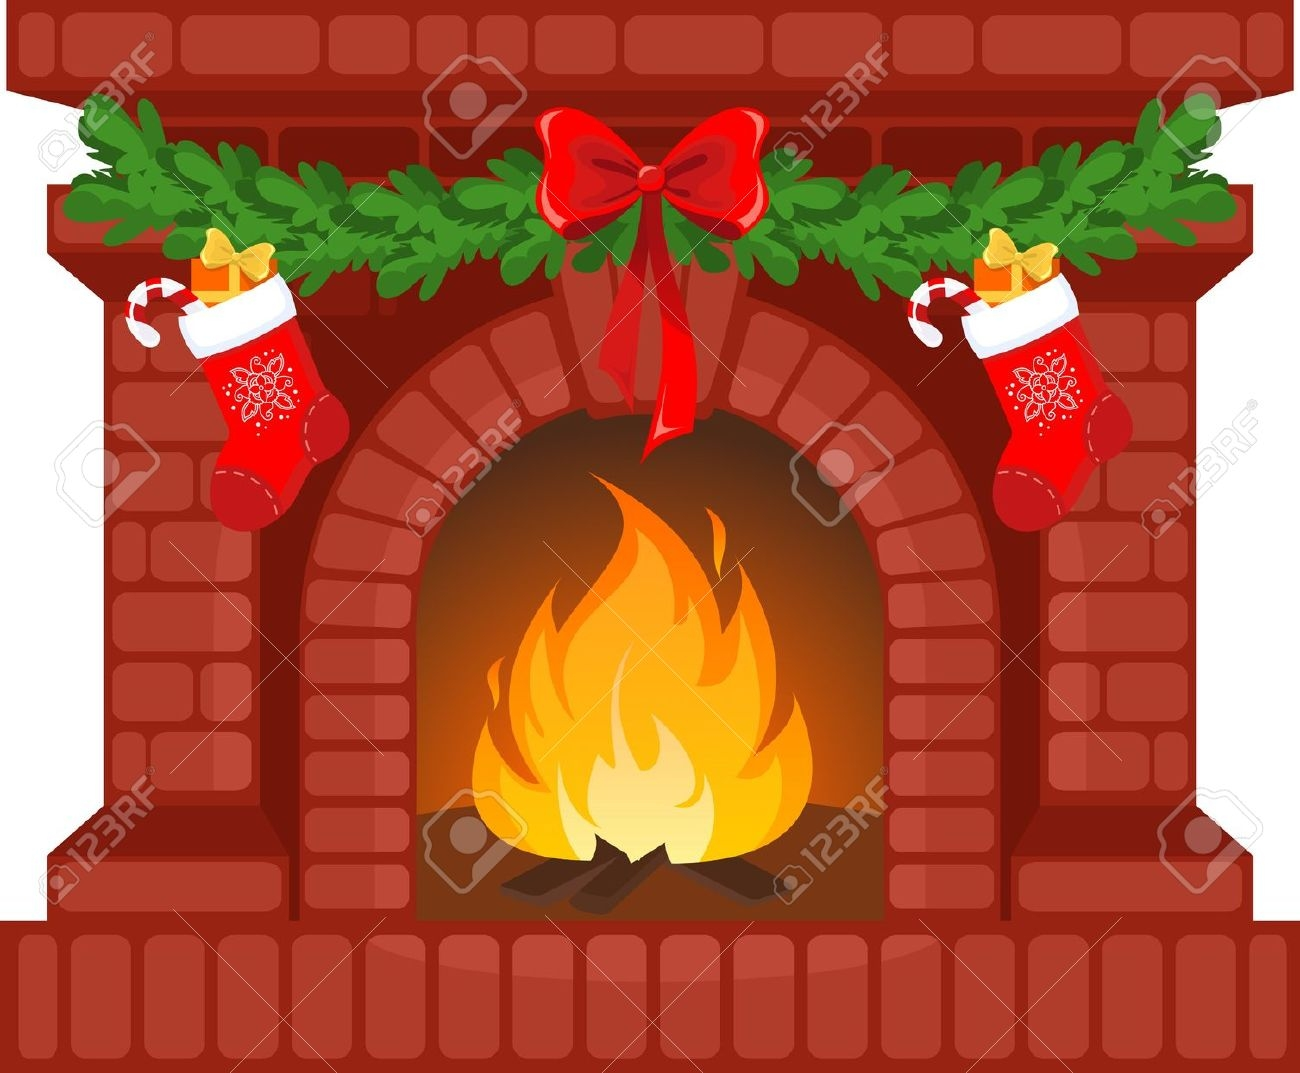 Christmas stockings fireplace clipart.